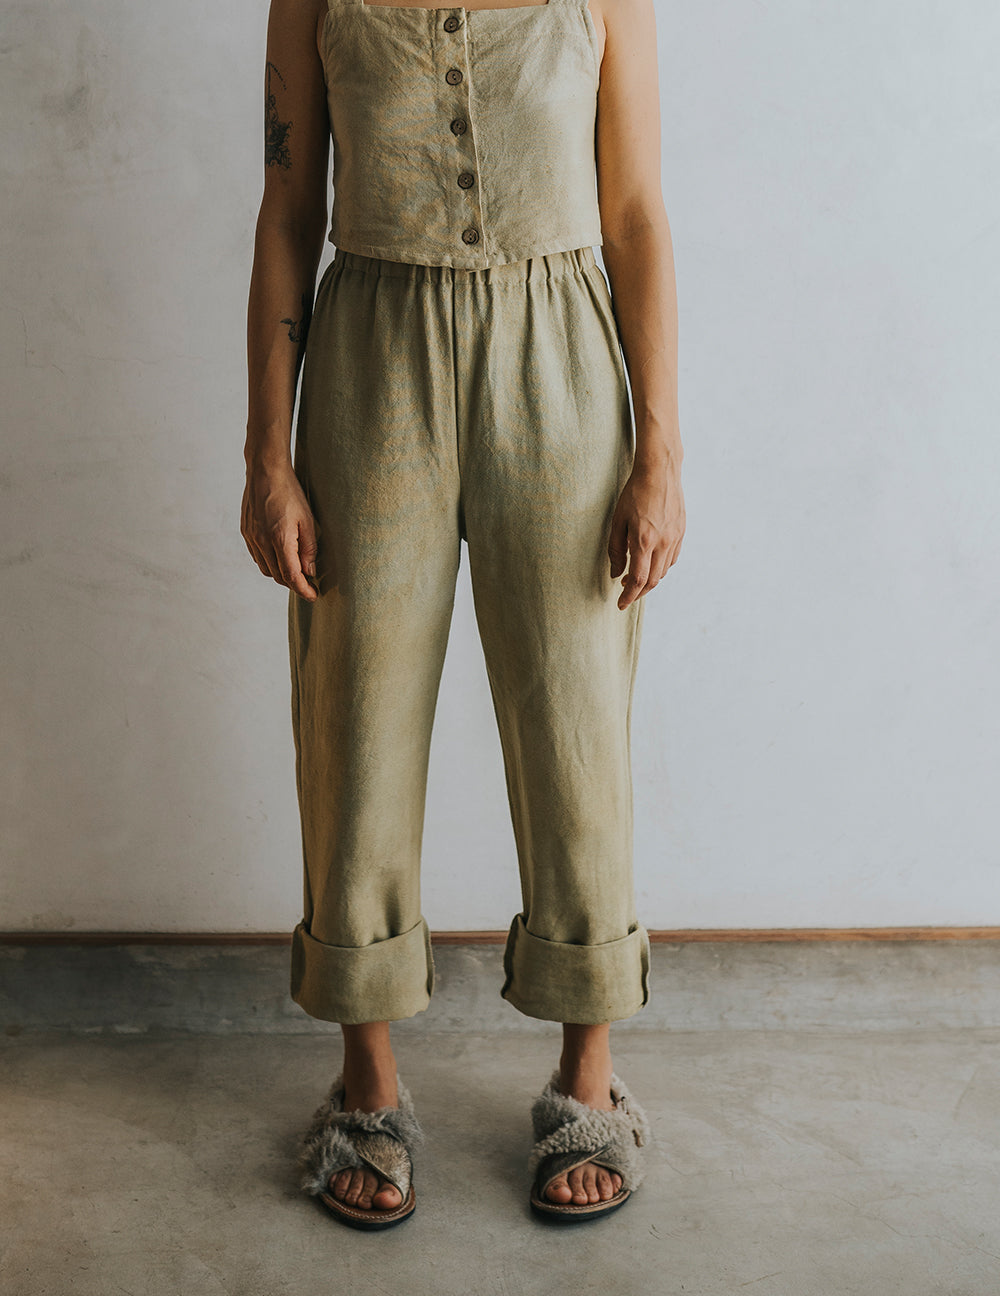 Straight Up Pant - Olive Green